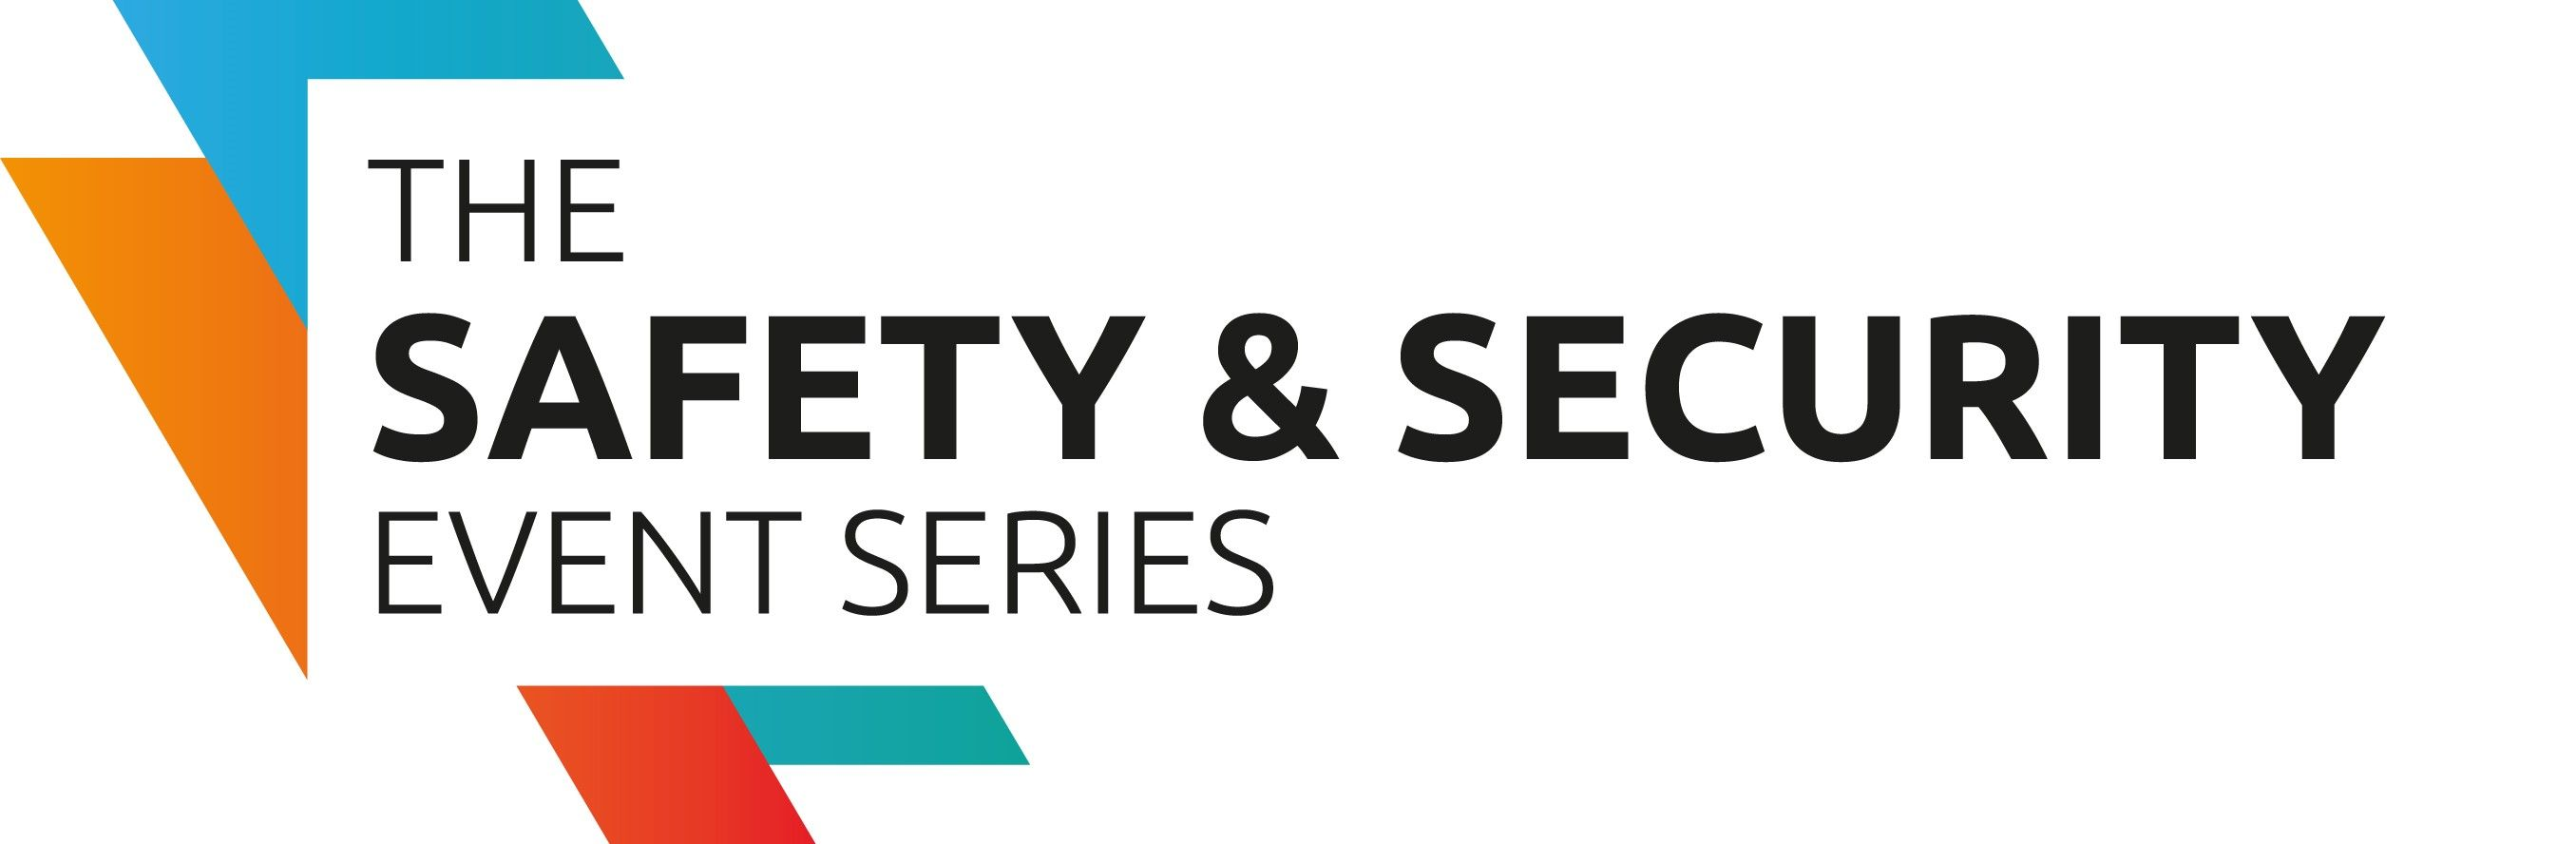 The Safety and Security Event Series